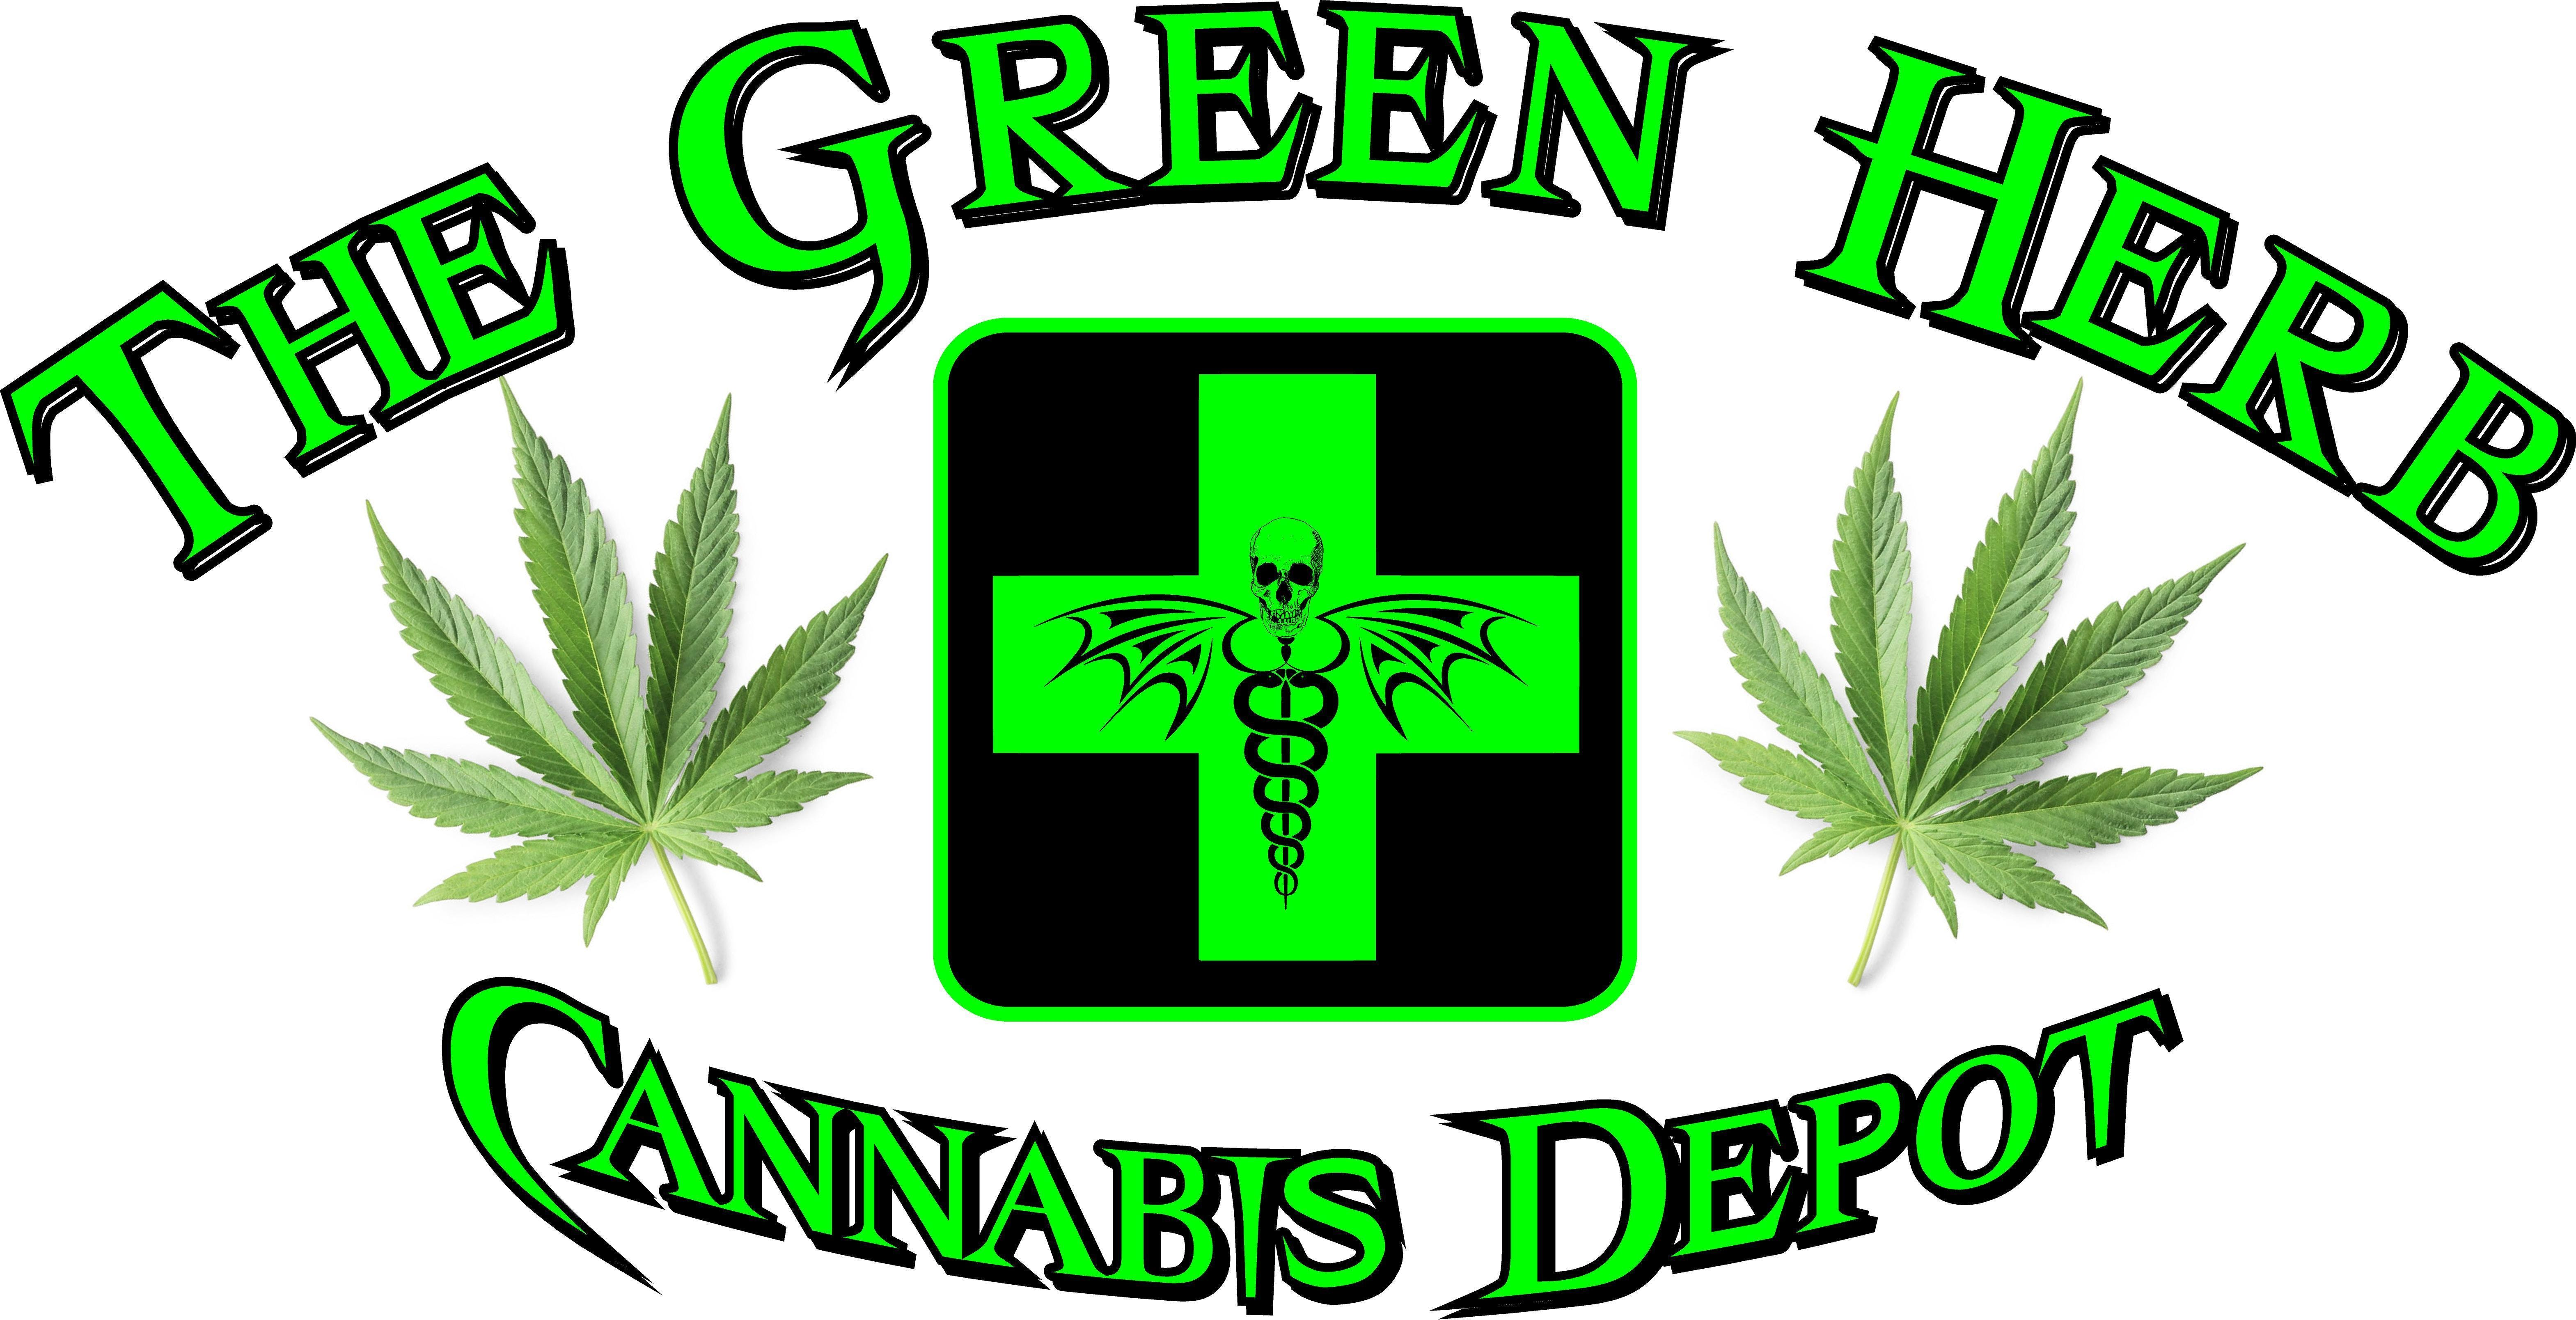 The Green Herb - Medical Marijuana Doctors - Cannabizme.com